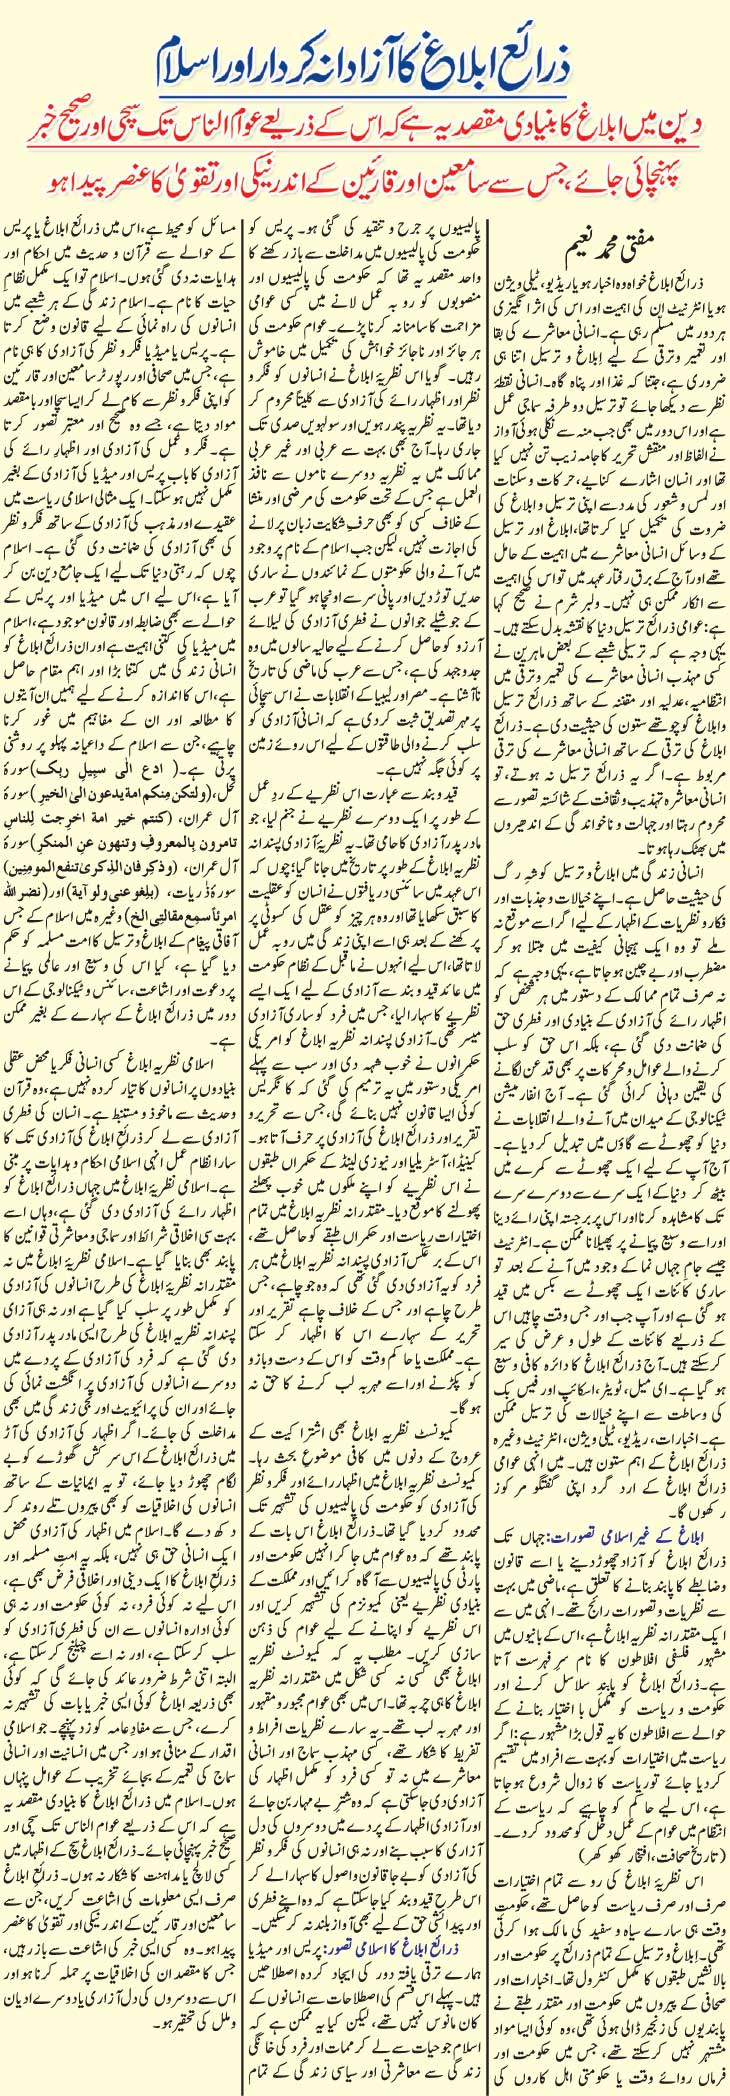 essay on importance of education in urdu My holiday essay in urdu essay as a friend i and my environment essay nickname essay writing center appointment princeton  importance of co education essay.